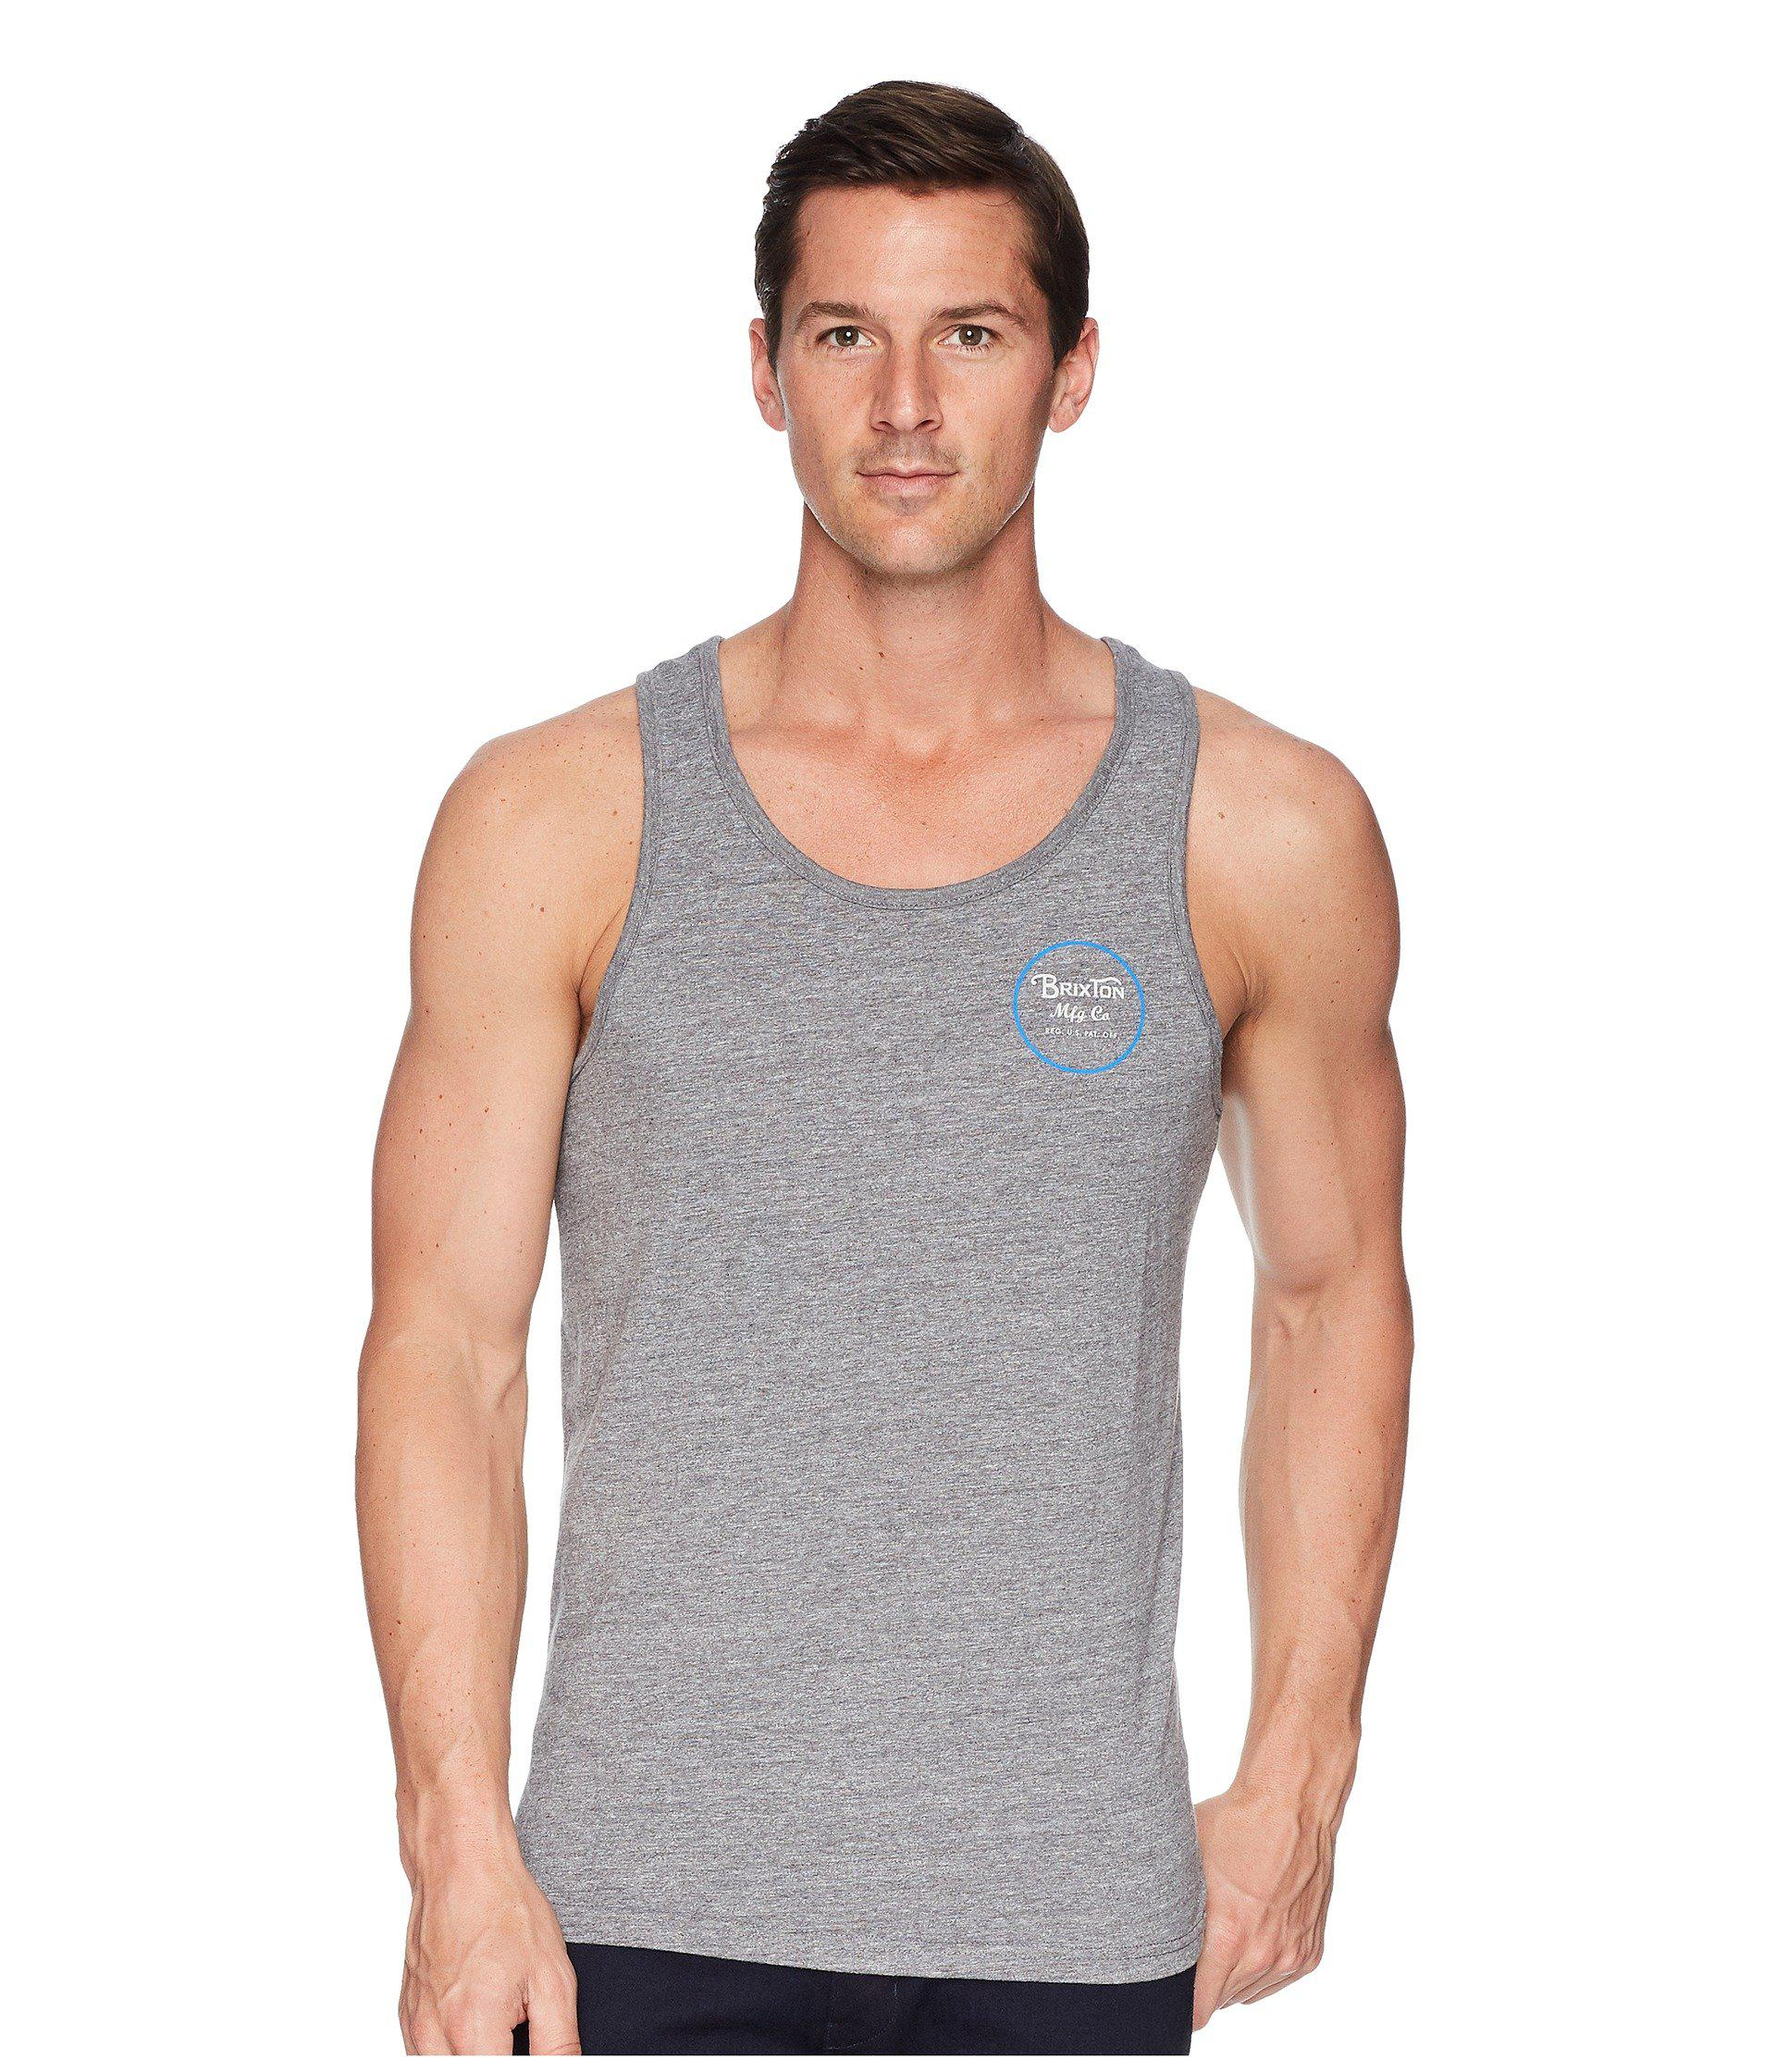 Lyst - Brixton Wheeler Tank Top in Gray for Men - Save 59% 1f5205c3833